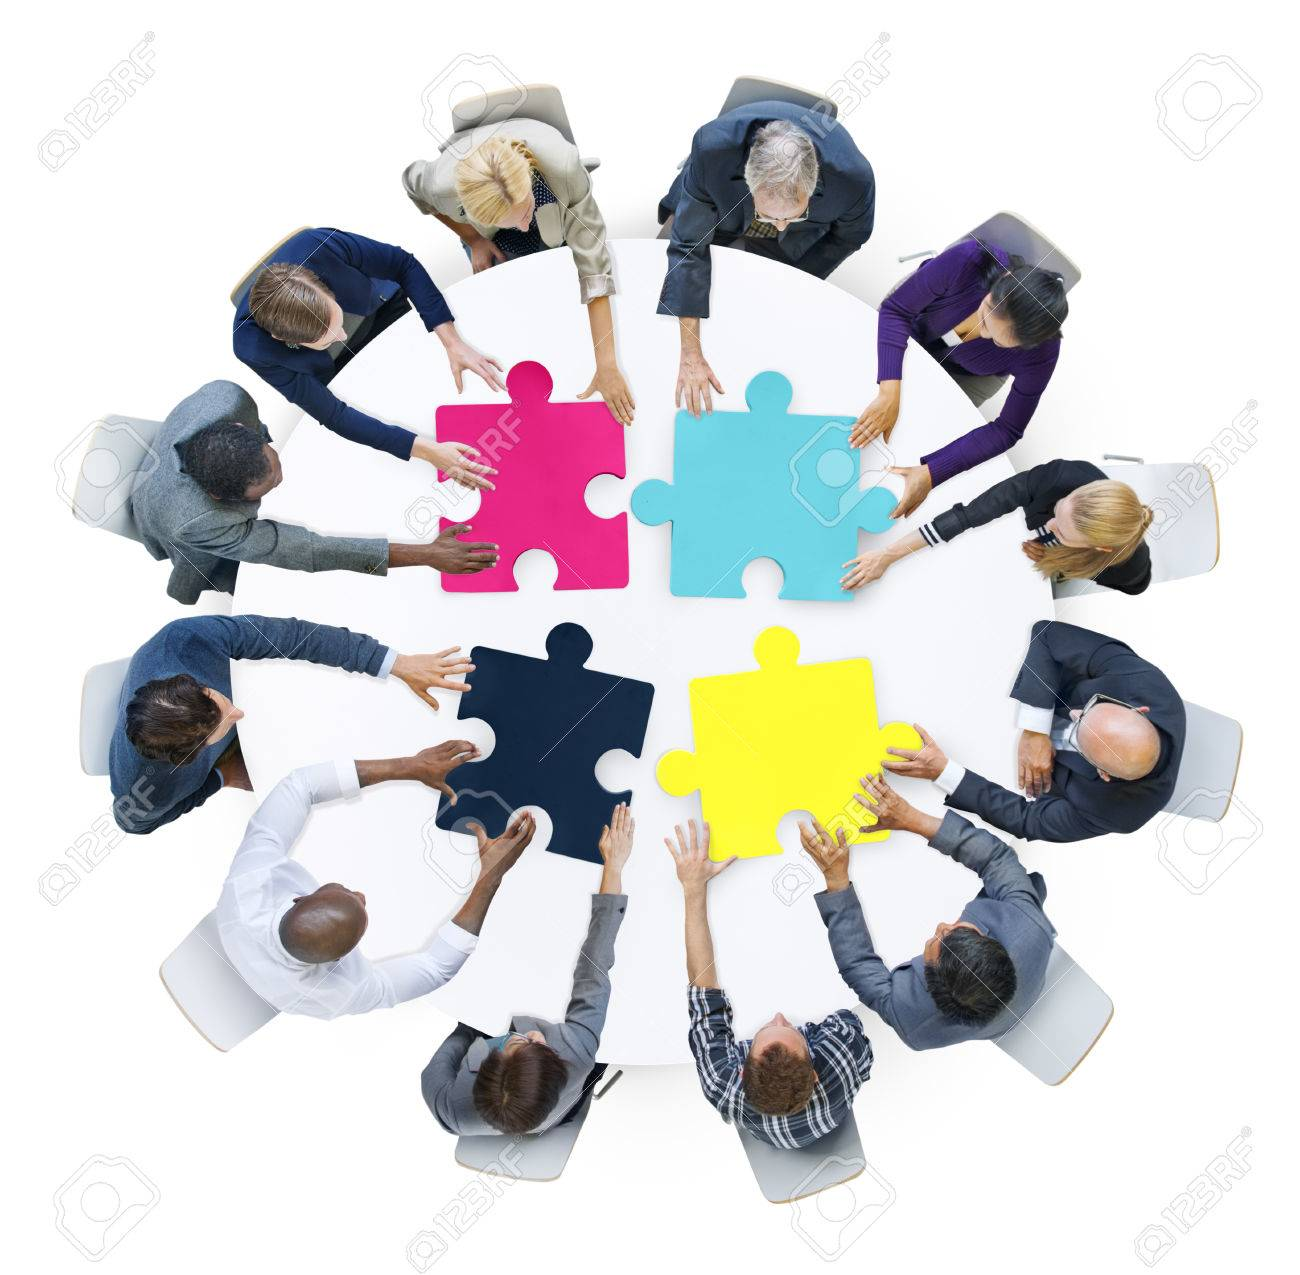 hight resolution of business people connection corporate jigsaw puzzle concept